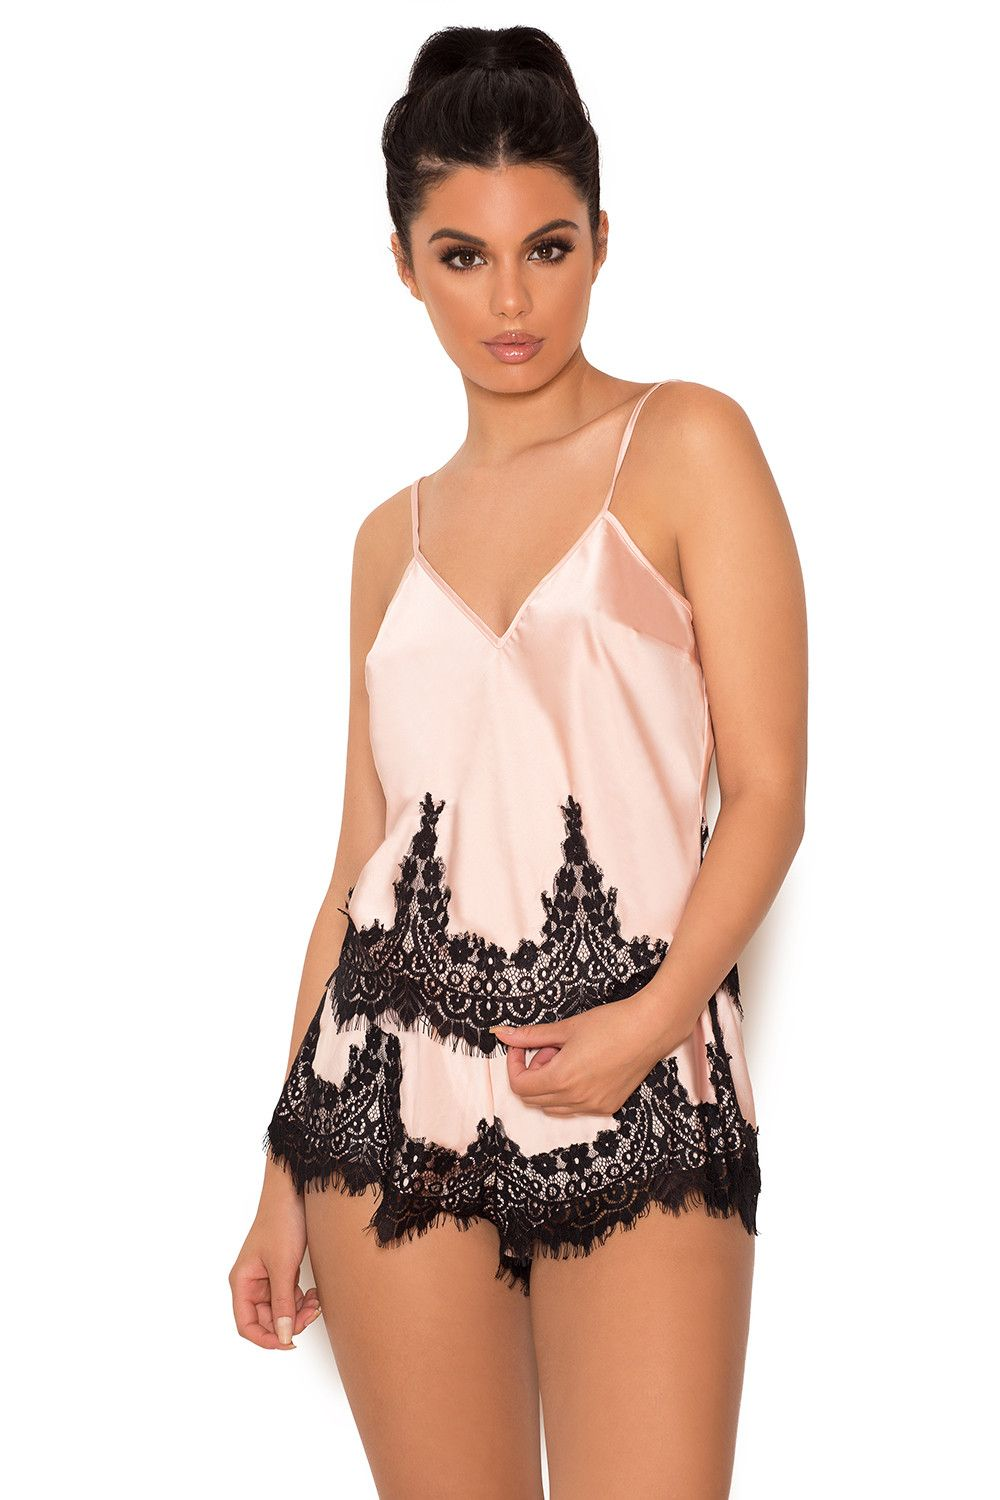 Clothing nightwear umelizau pink satin cami and shorts sleep set